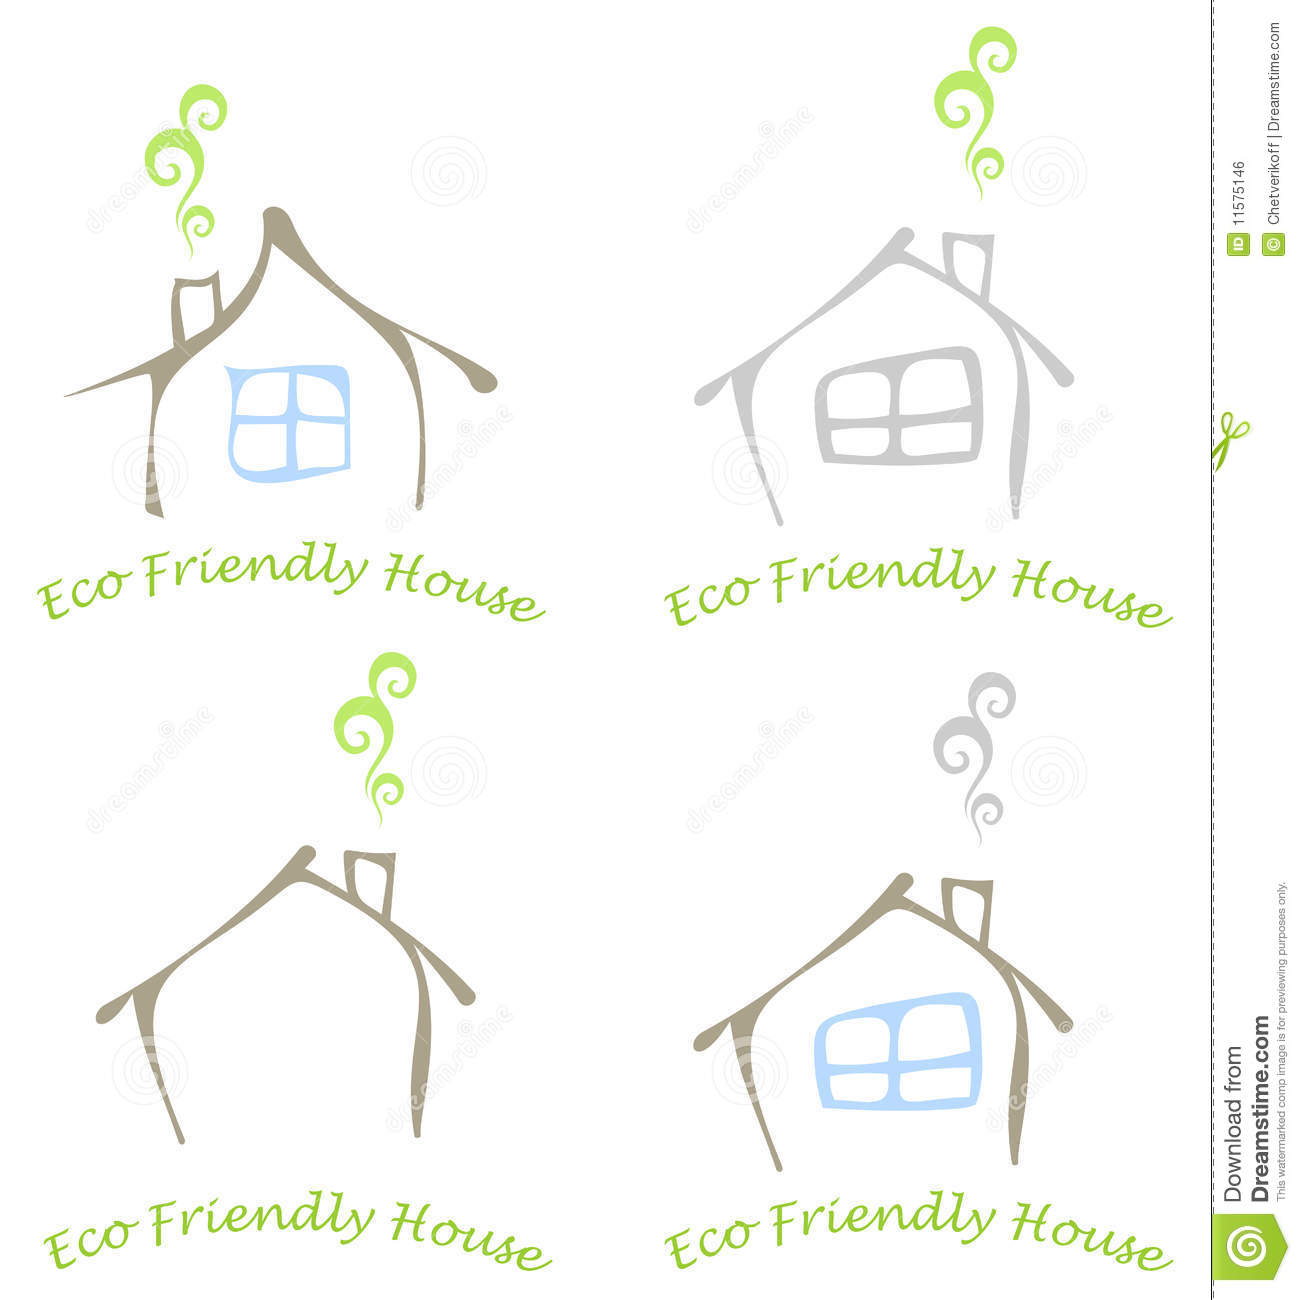 Eco Friendly House Royalty Free Stock Image Image 11575146